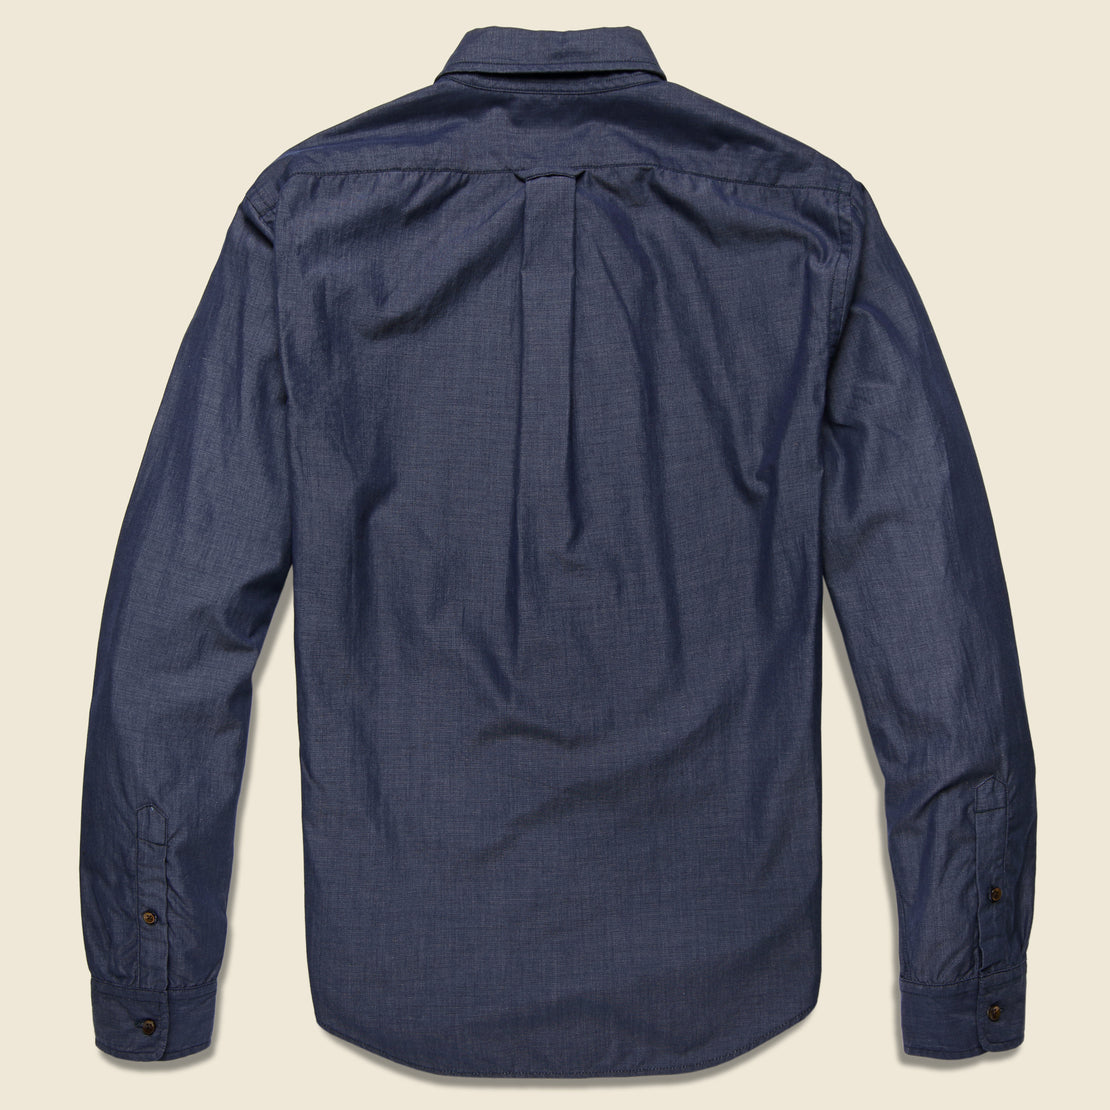 End on End School Shirt - Navy - Alex Mill - STAG Provisions - Tops - L/S Woven - Solid